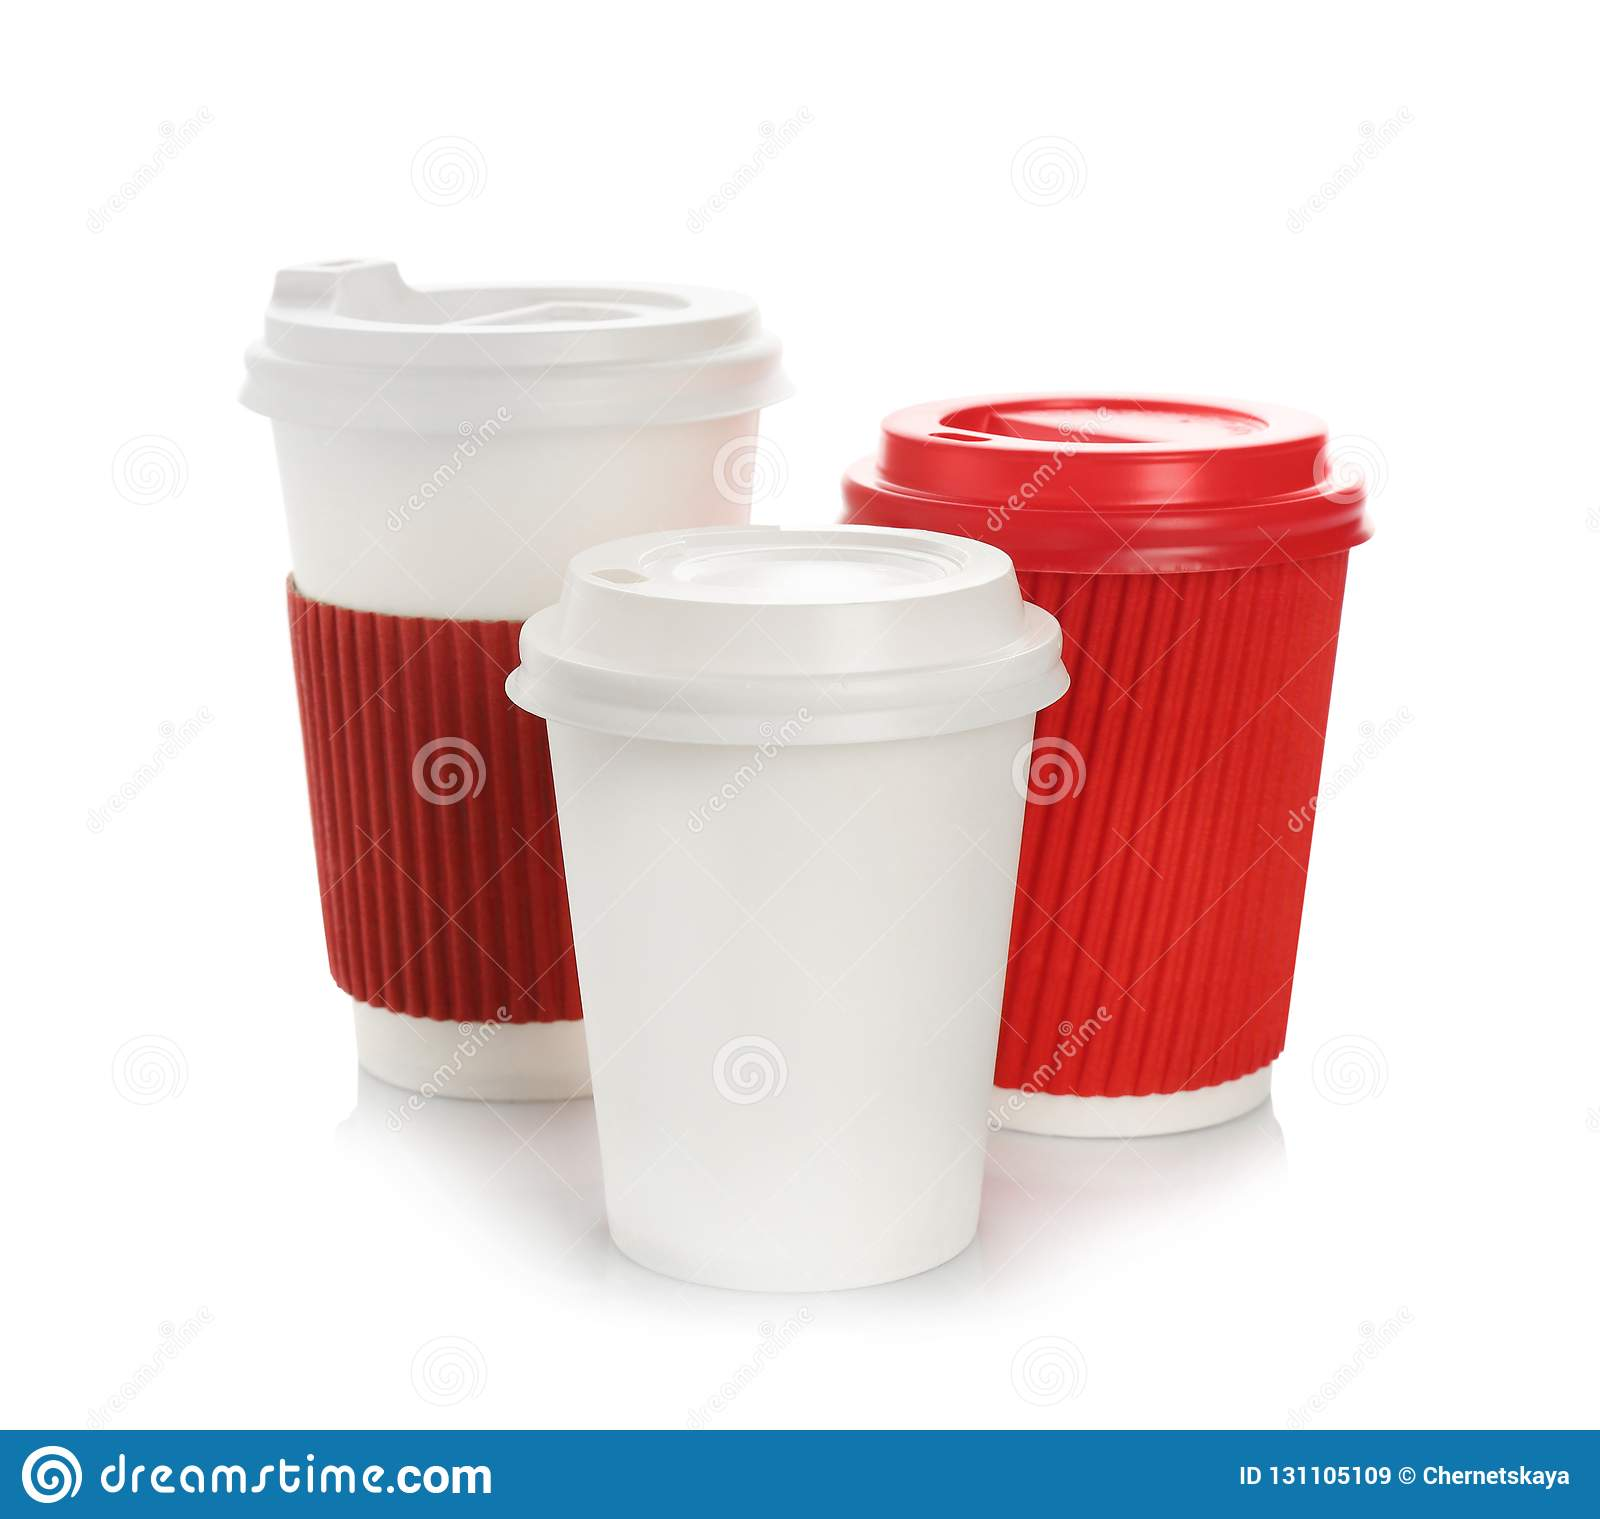 Takeaway Paper Coffee Cups With Lids Stock Image - Image ...